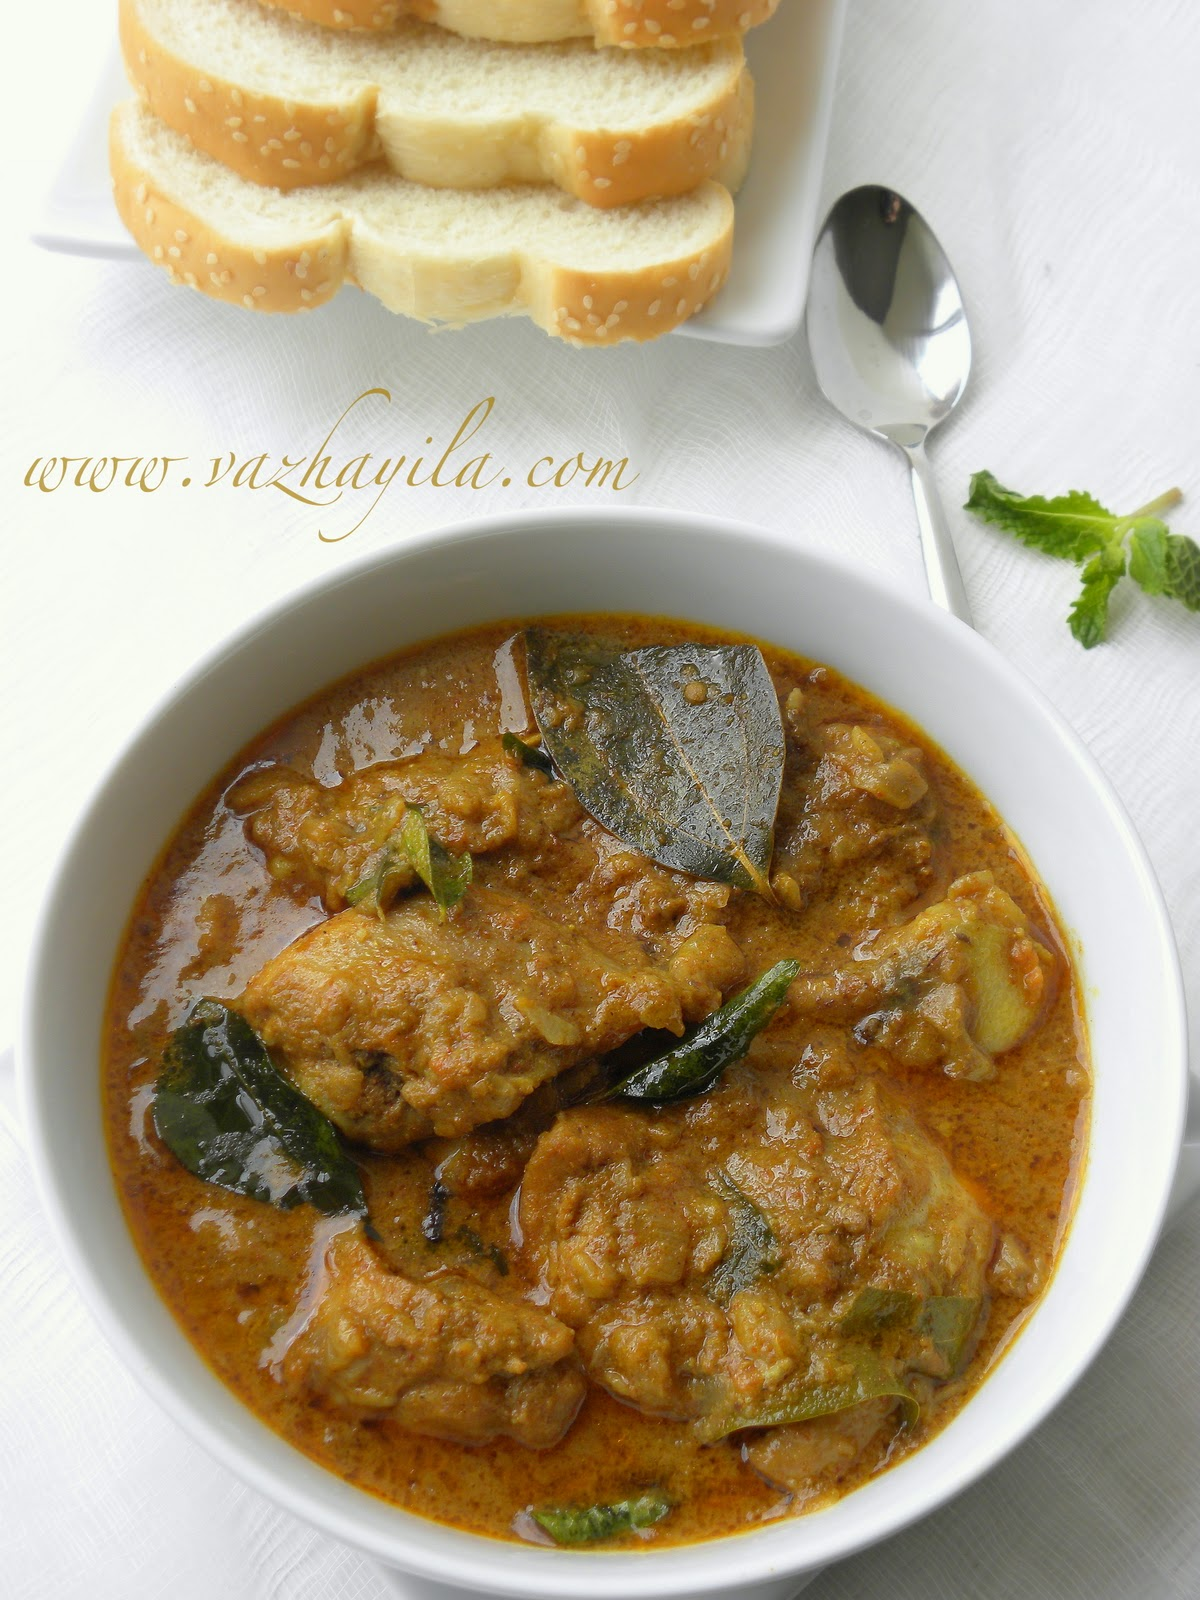 Vazhayila.comChicken curry with coconut milk